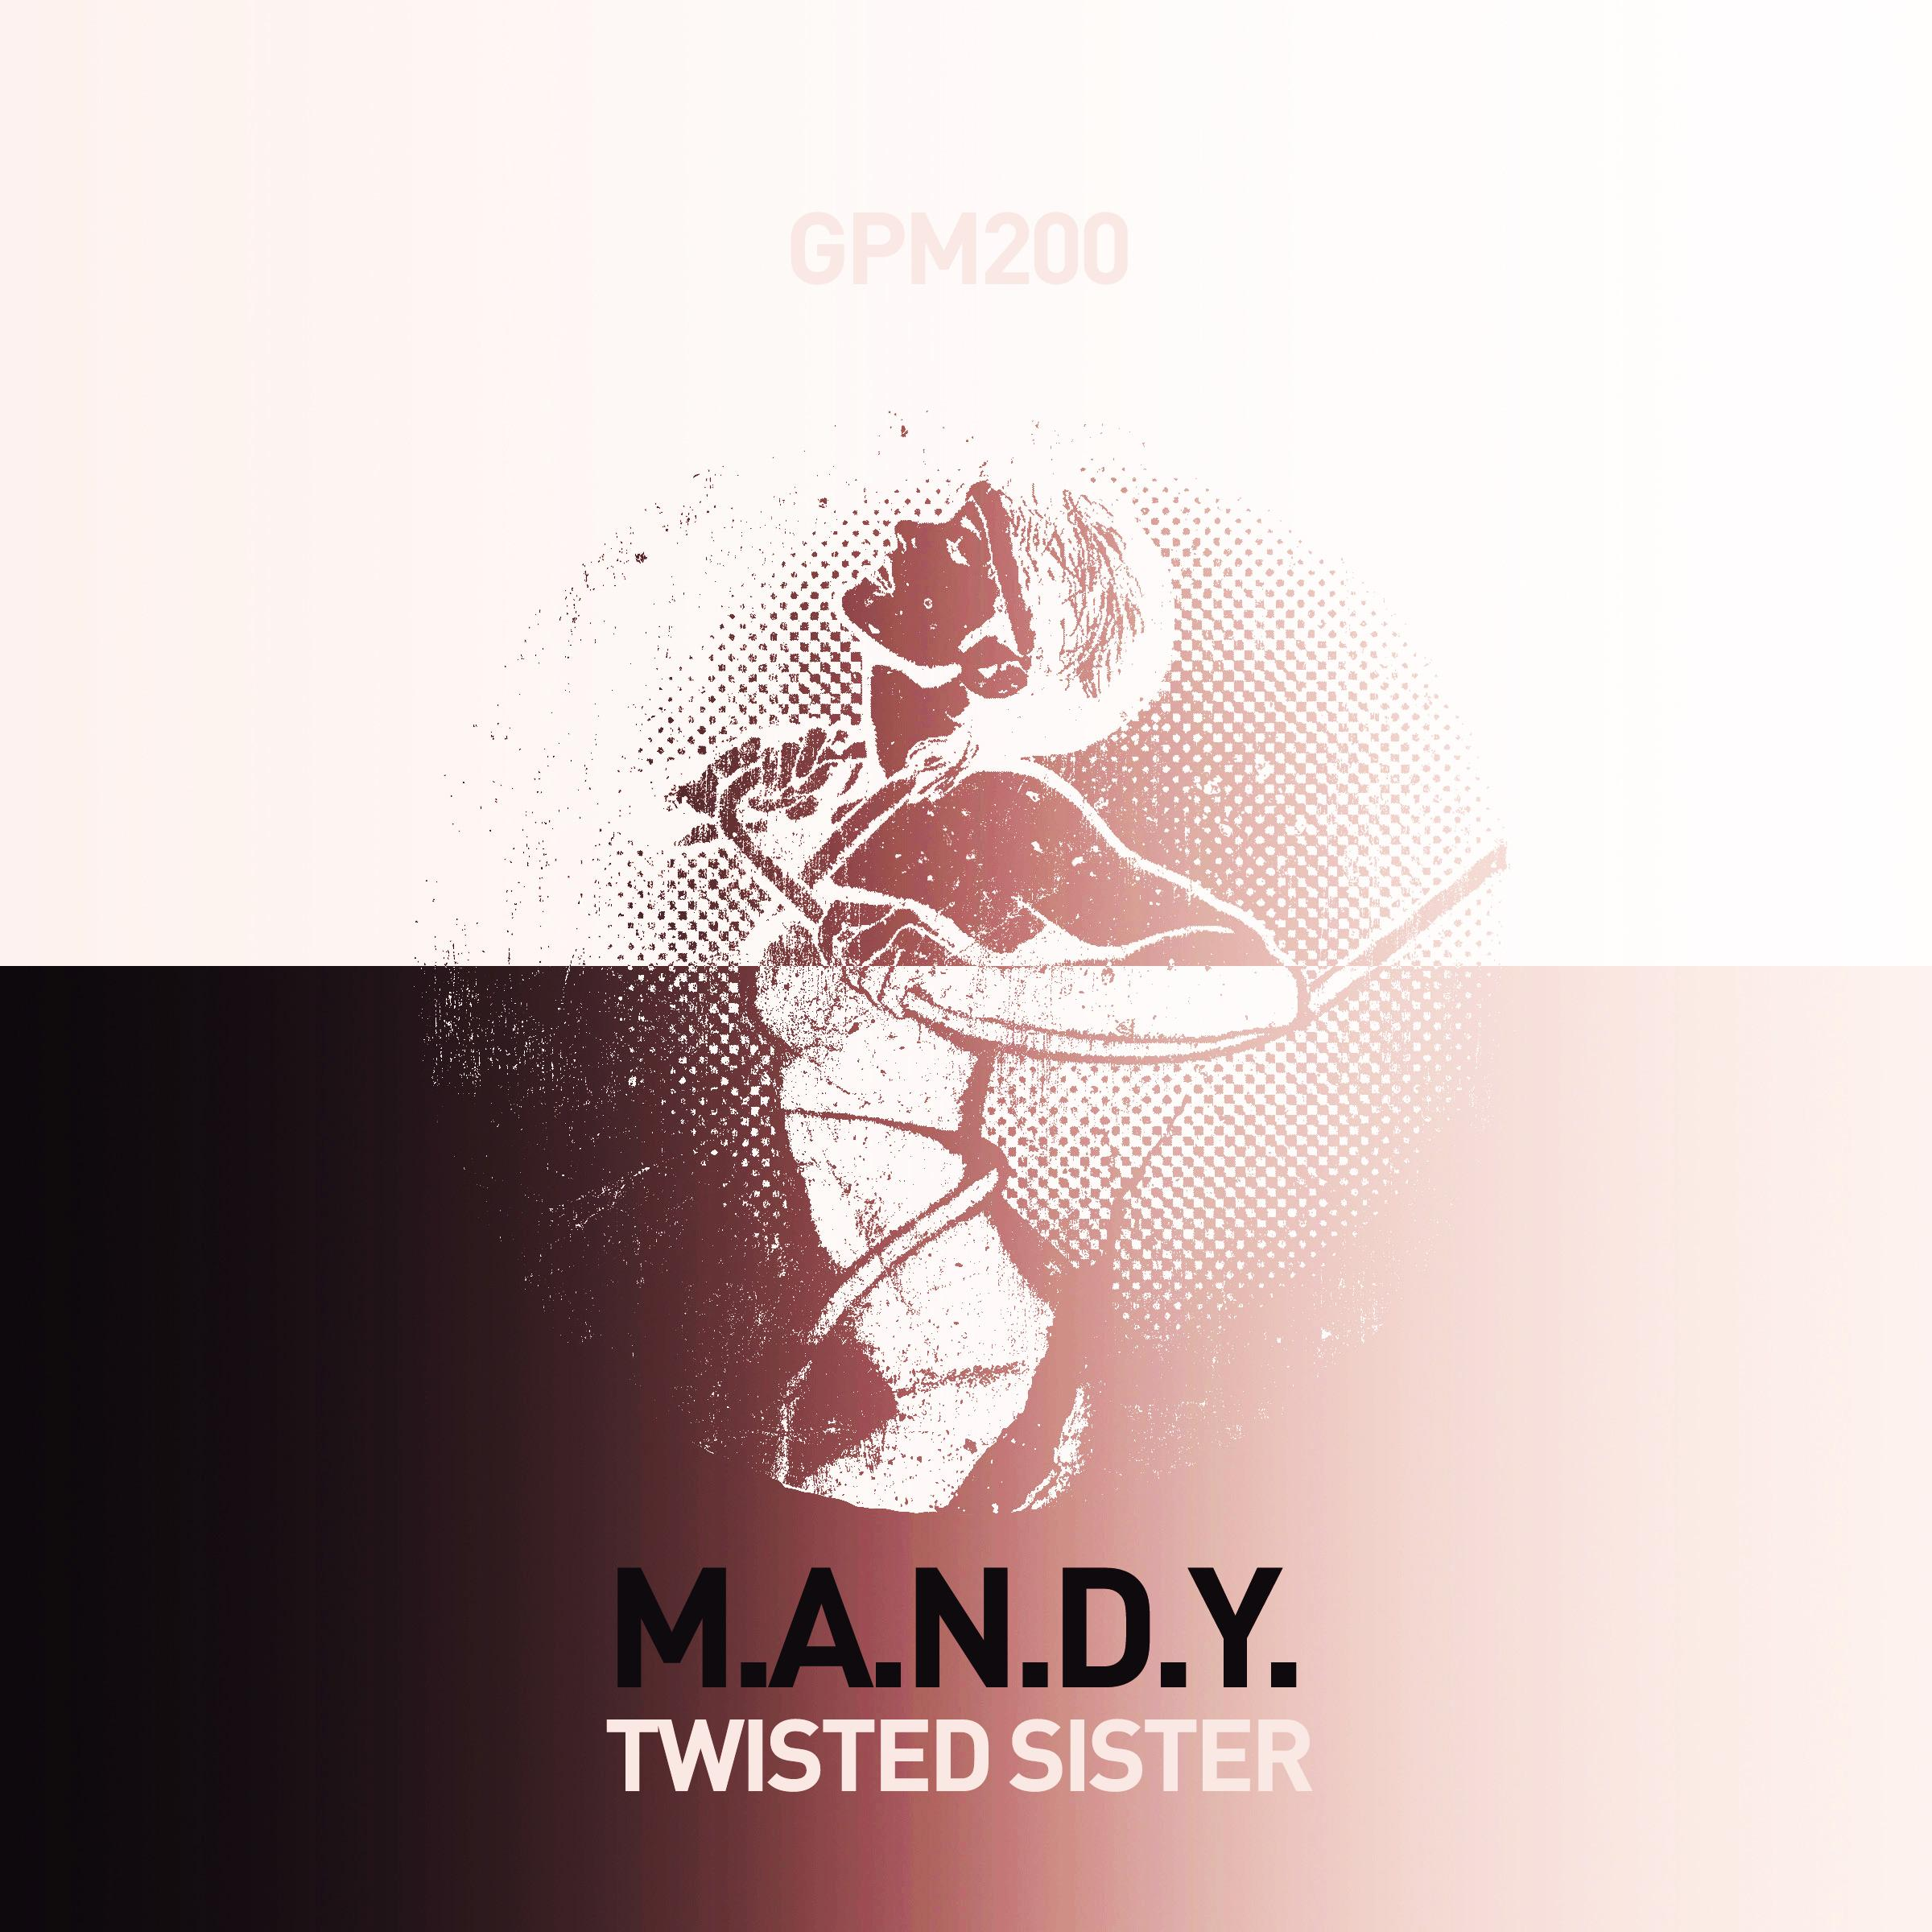 MANDY - Twisted sister EP